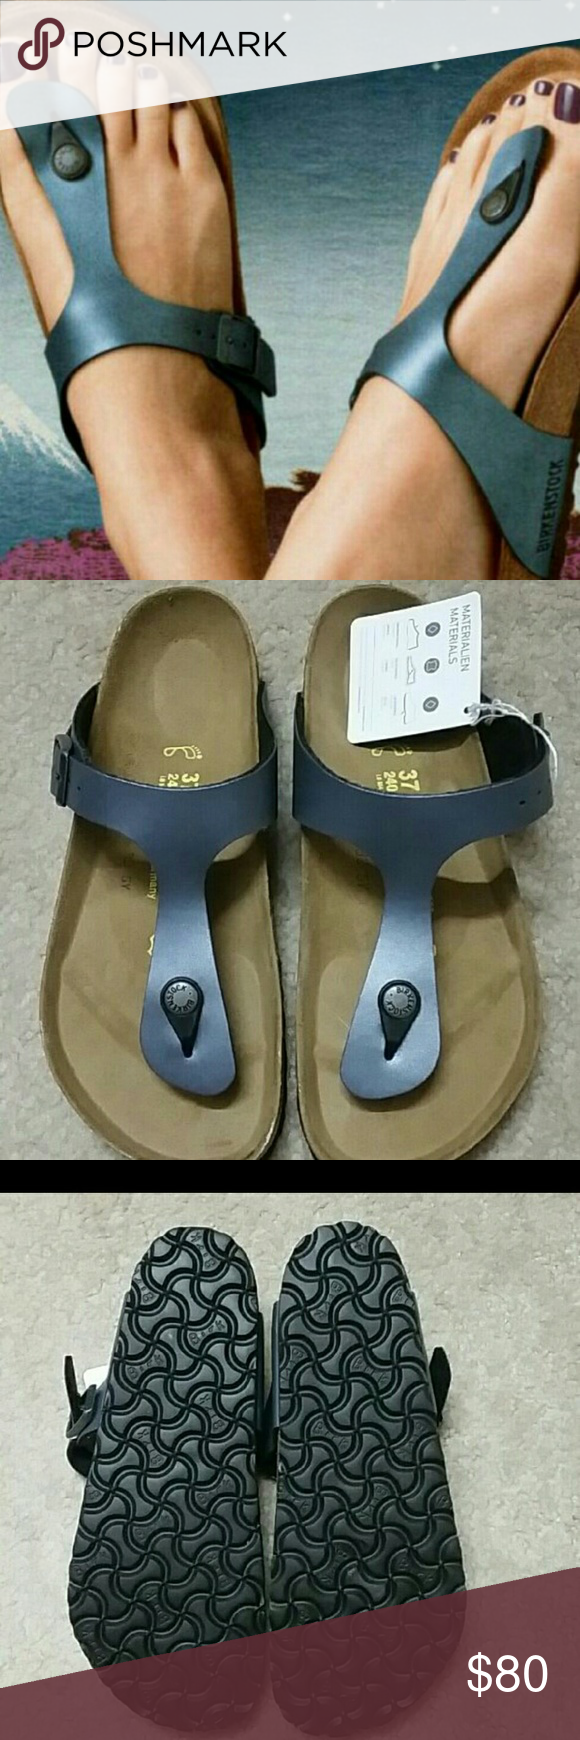 Spotted while shopping on Poshmark: Birkenstock